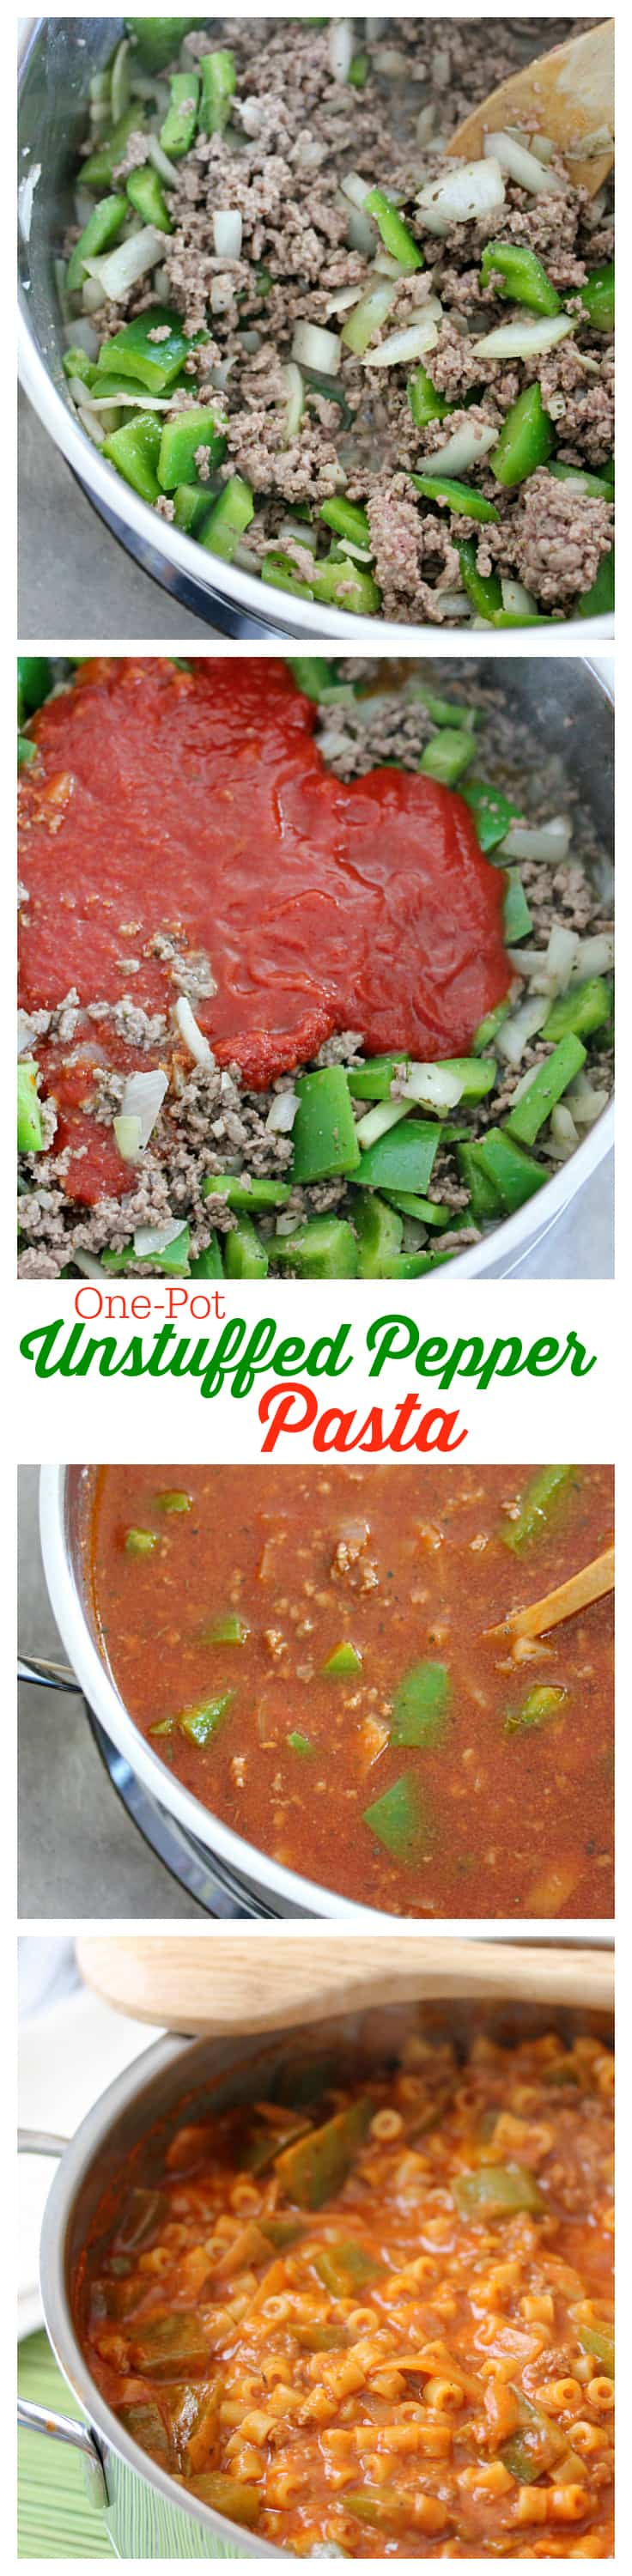 One-Pot Unstuffed Pepper Pasta - The easiest One-Pot Unstuffed Pepper Pasta recipe ever! Make your family a delicious meal in under 30 minutes.